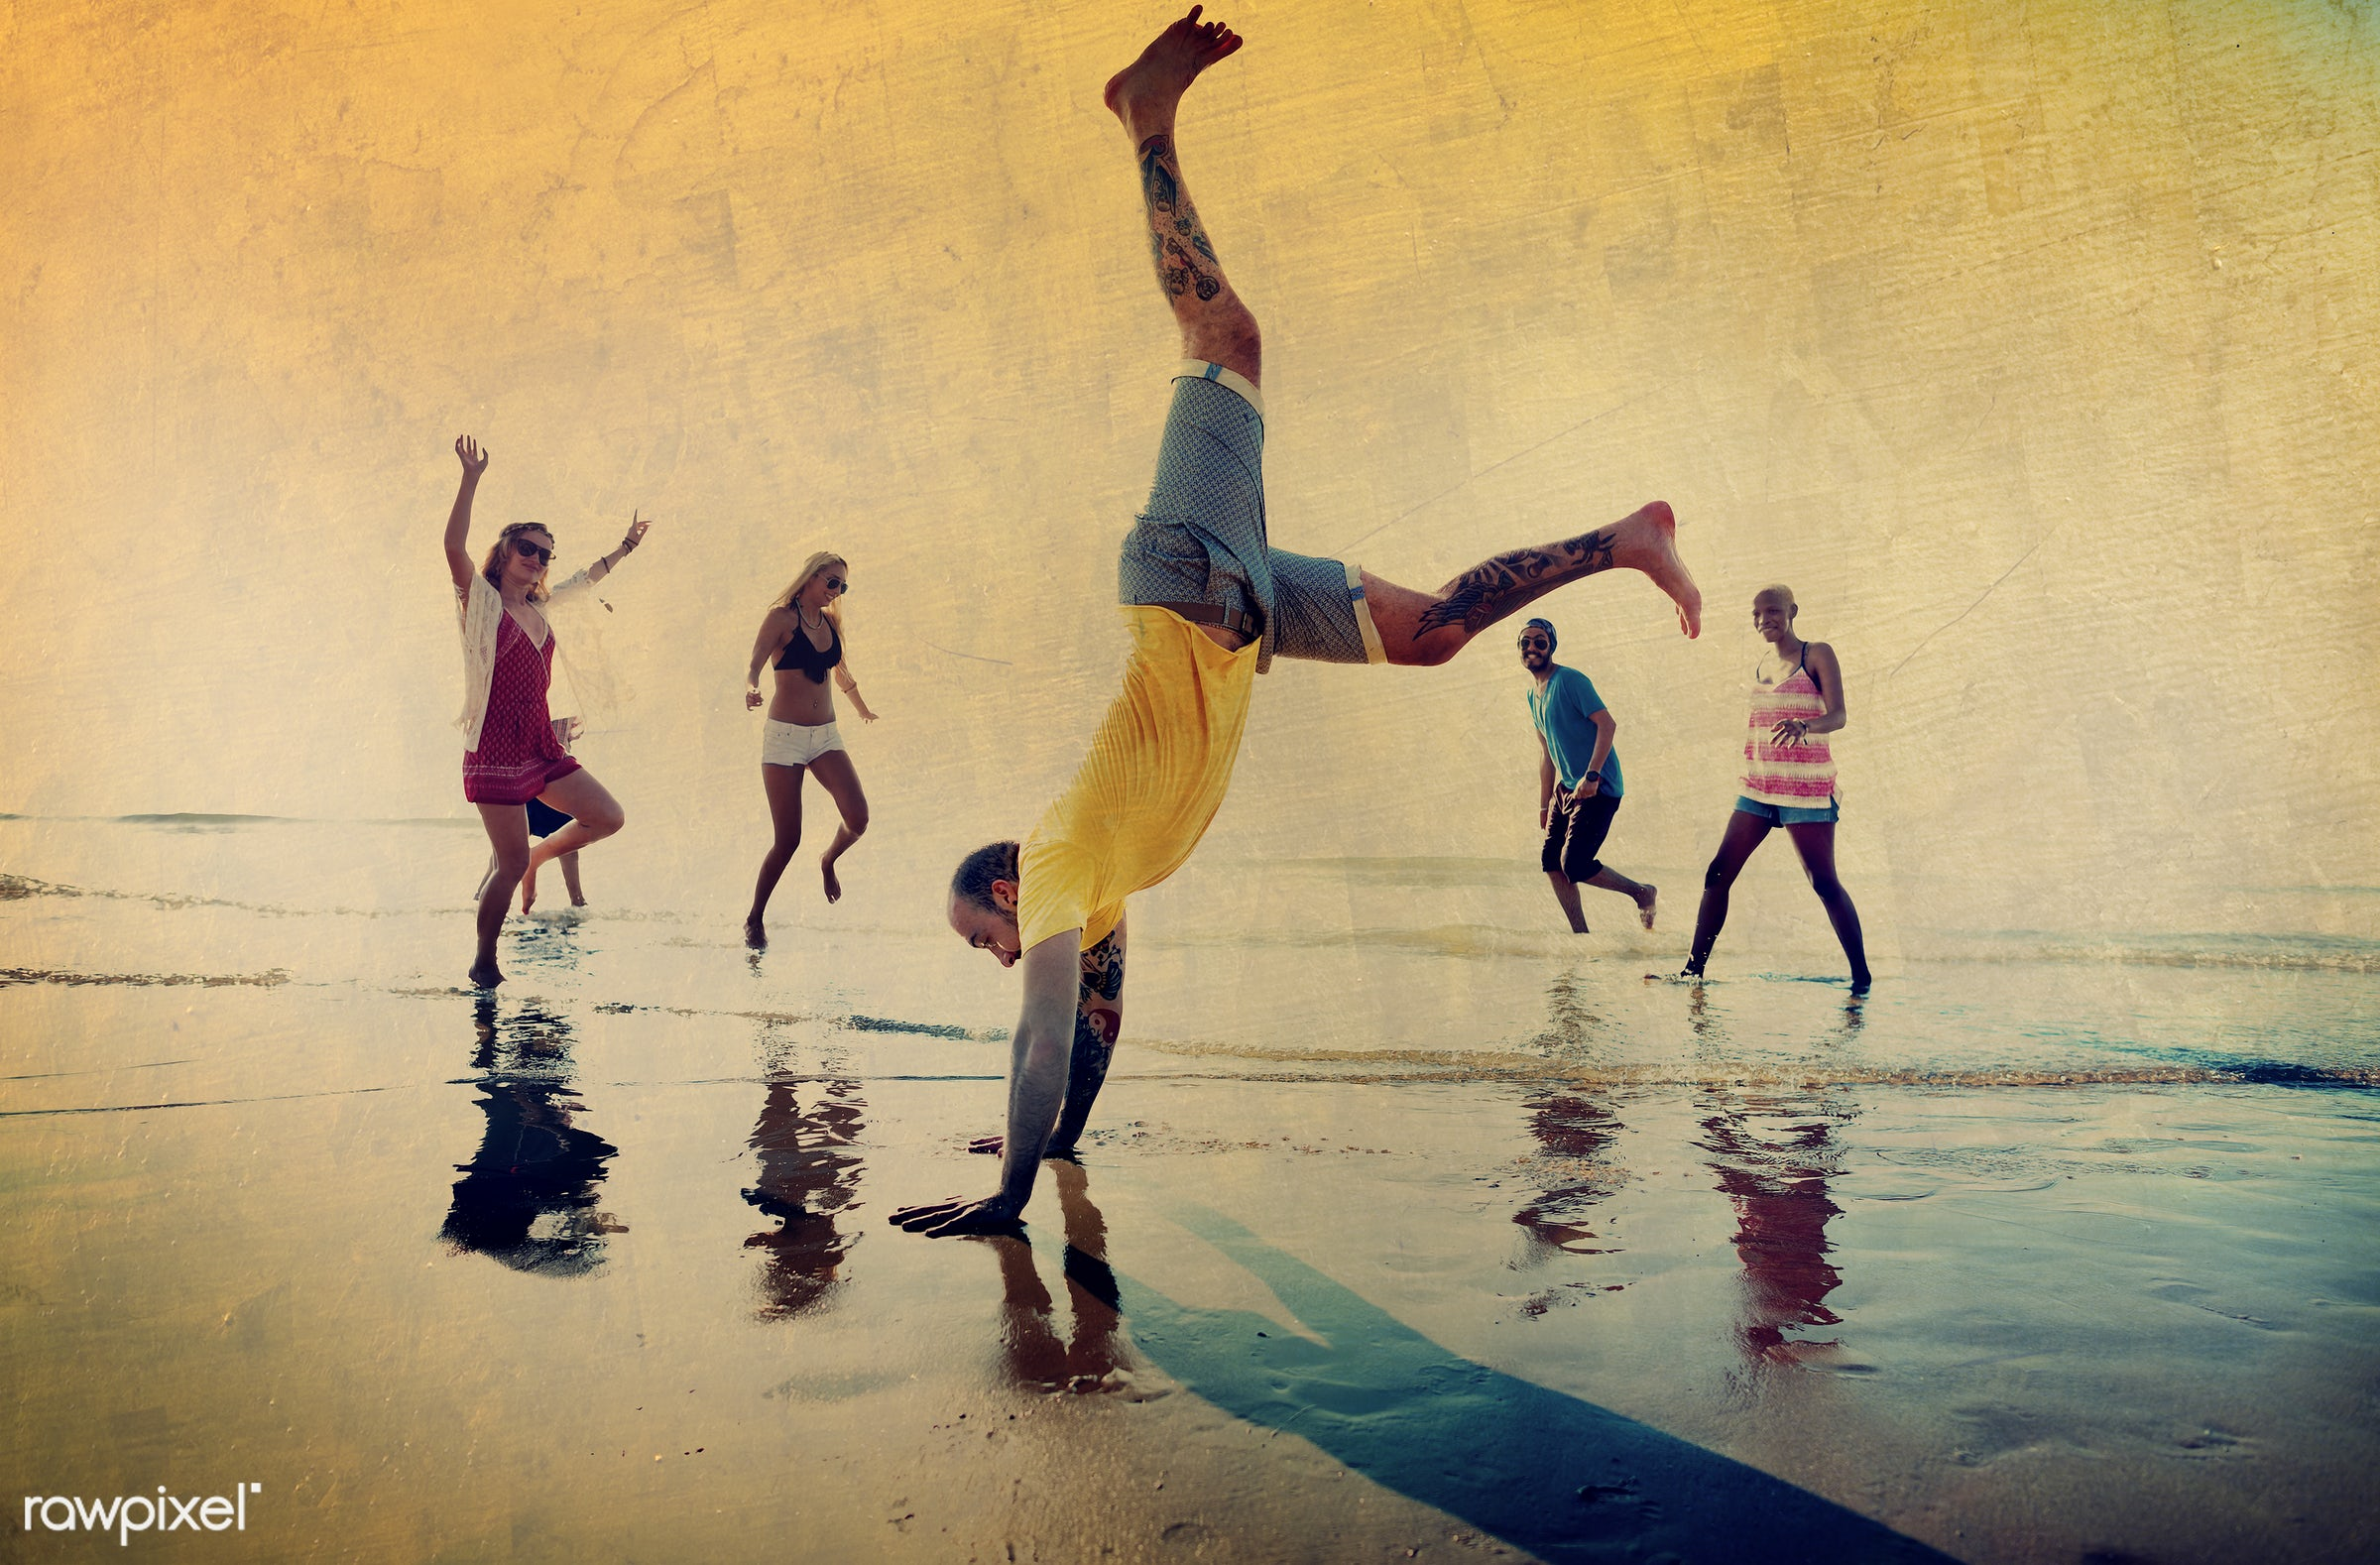 dancing, action, african descent, arms raised, beach, bonding, celebration, cheerful, chilling, diverse, dusk, ecstatic,...